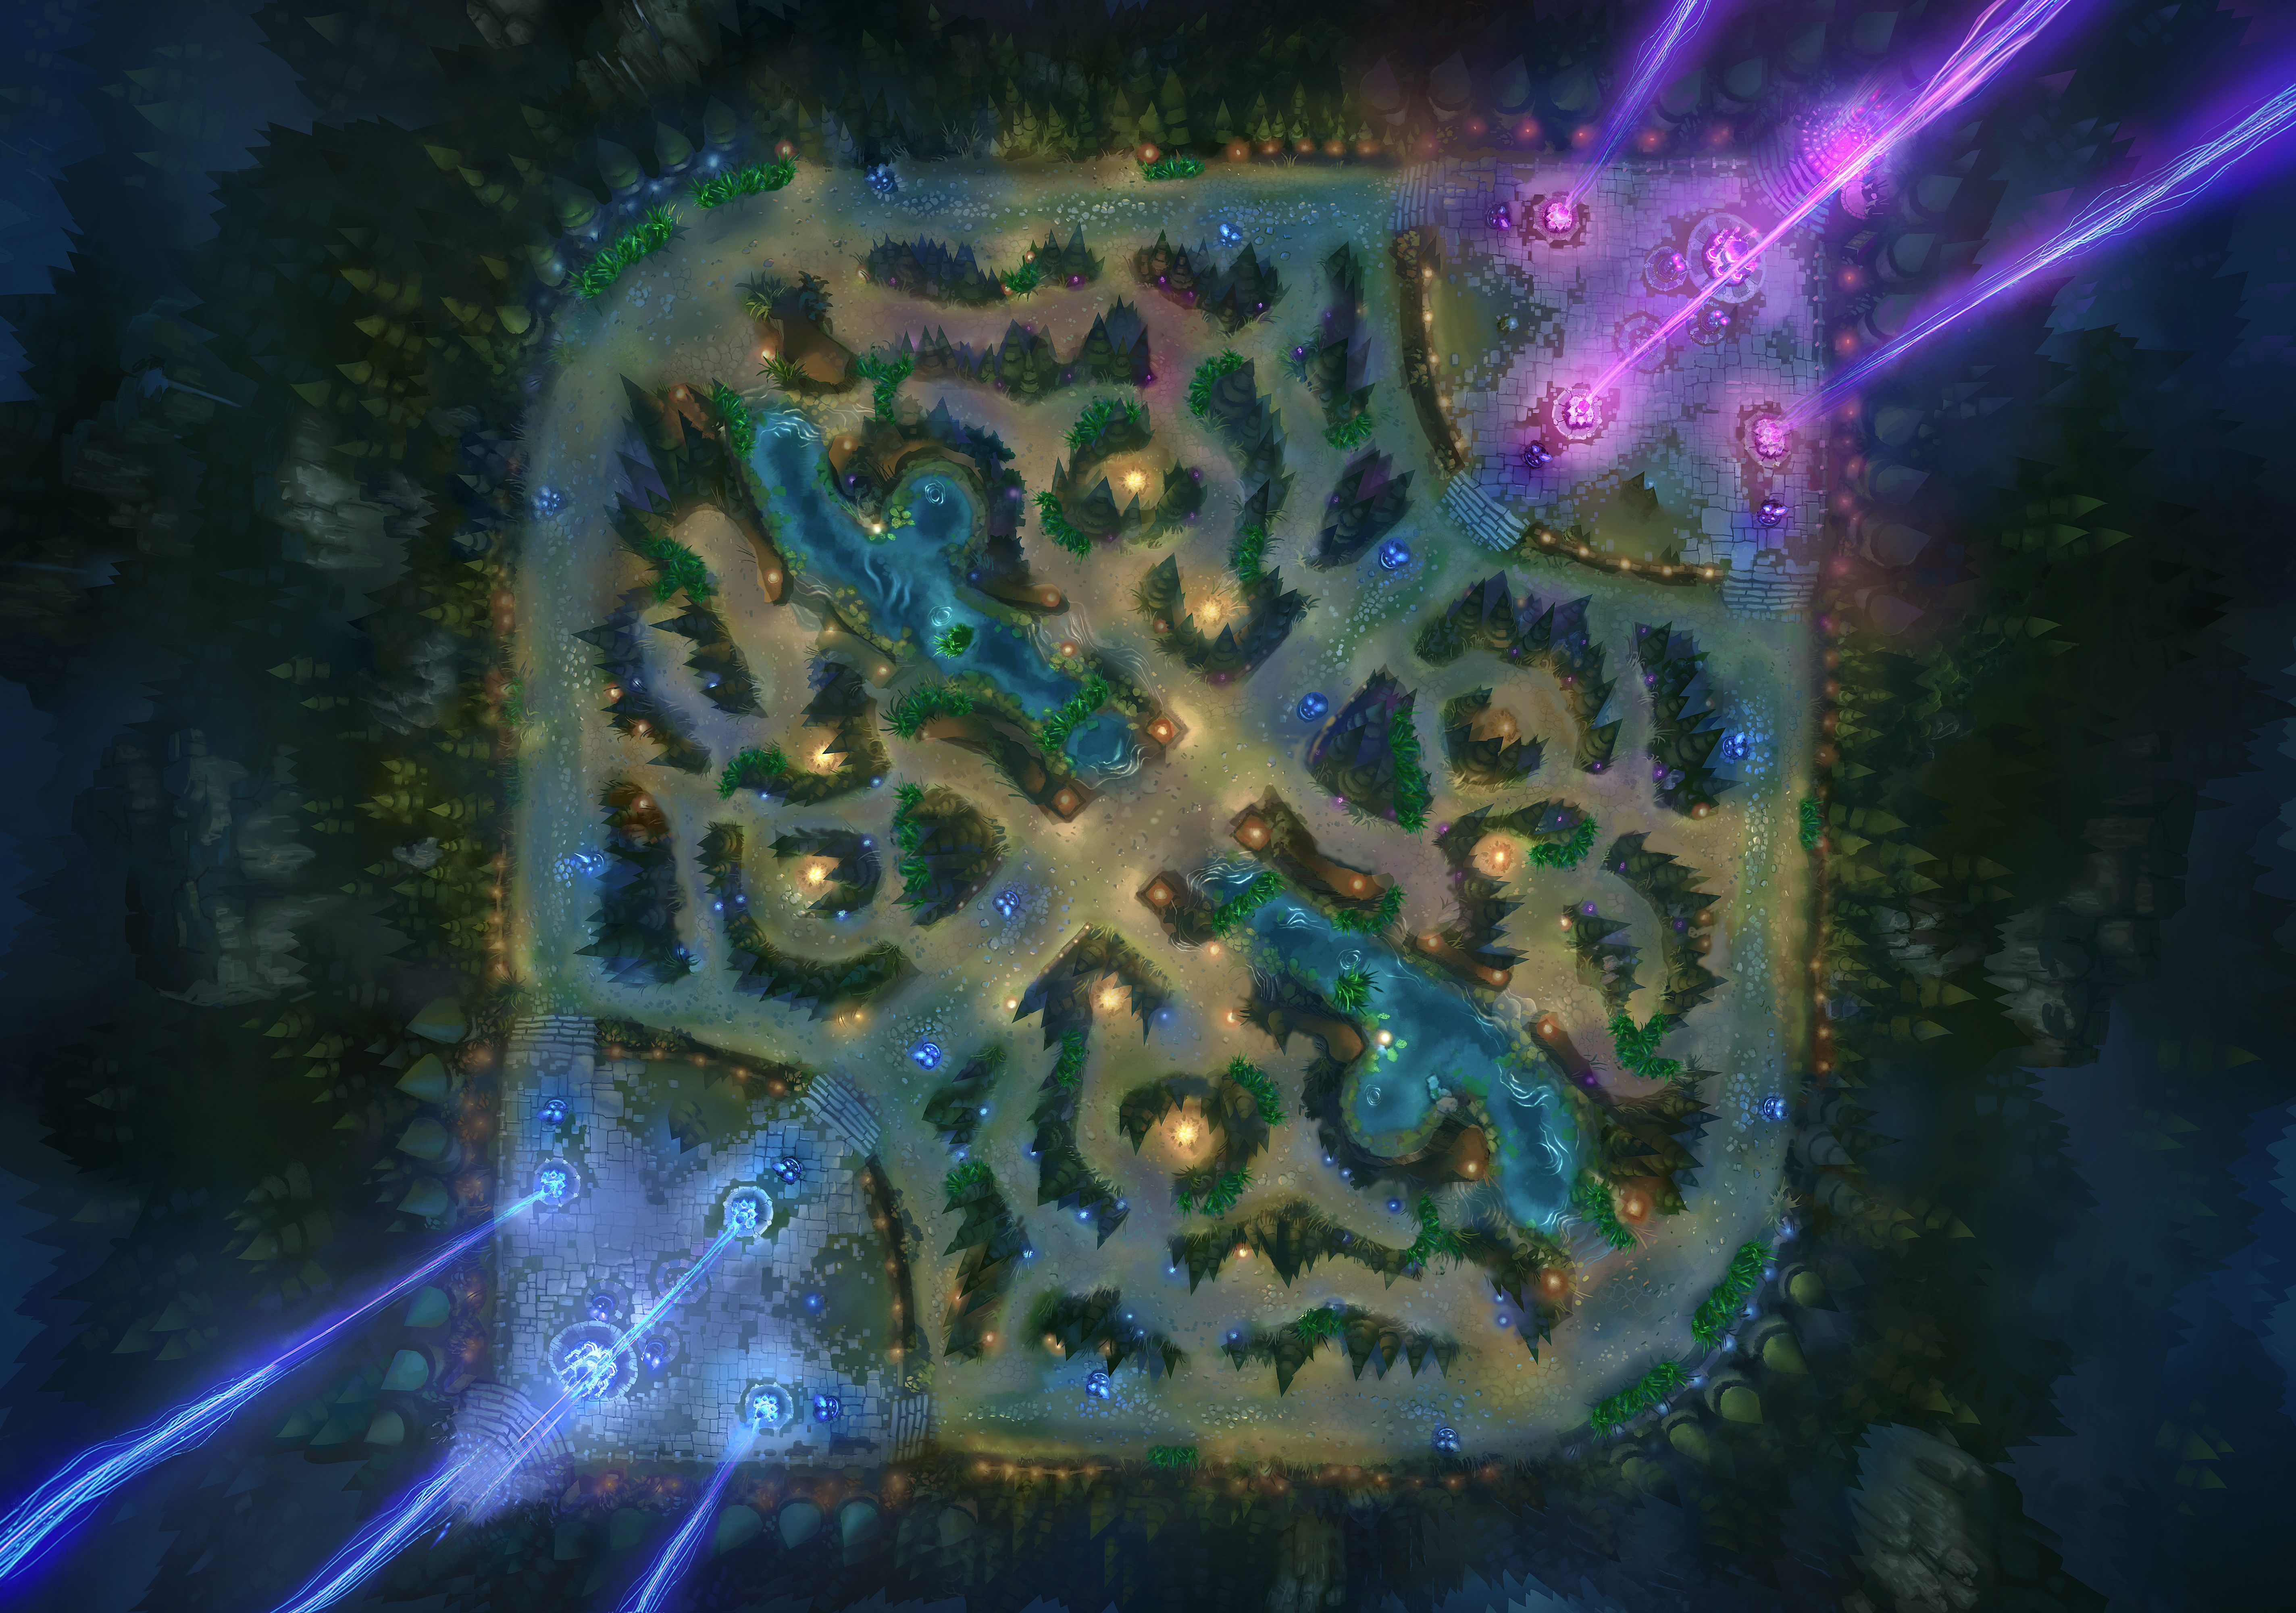 Summoners Rift in League of Legends